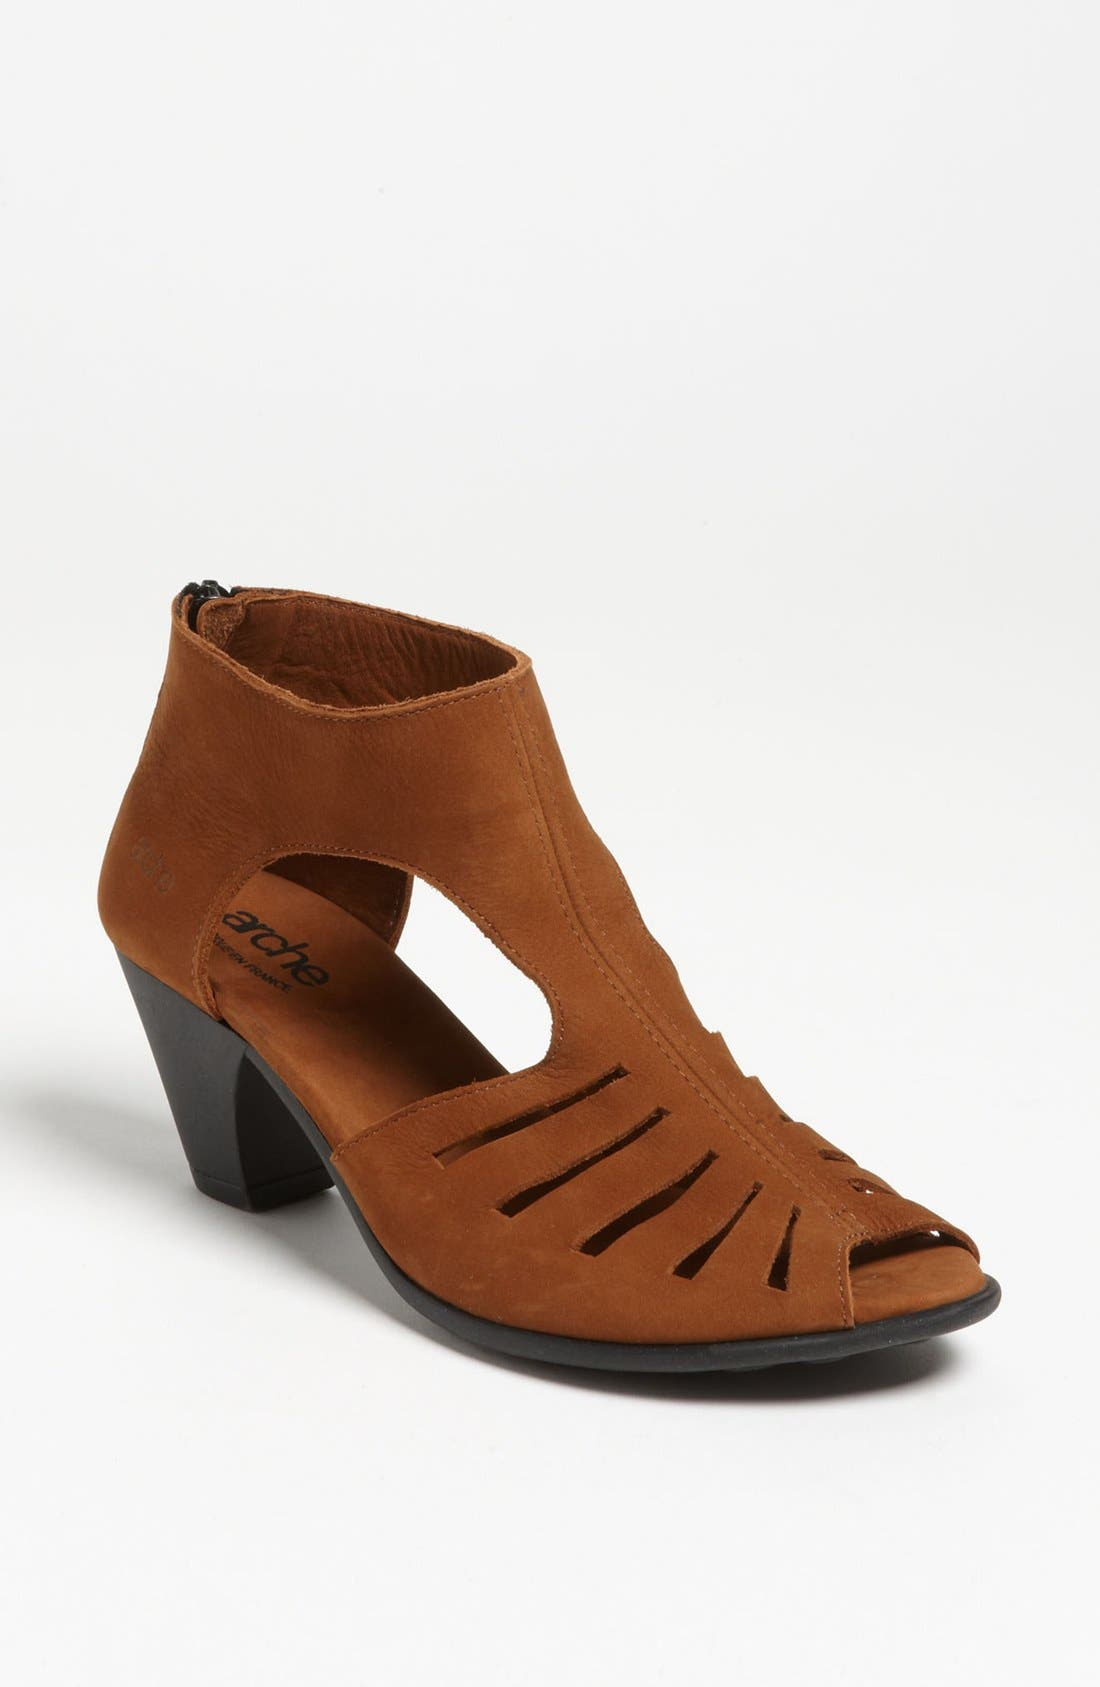 Alternate Image 1 Selected - Arche 'Miko' Sandal